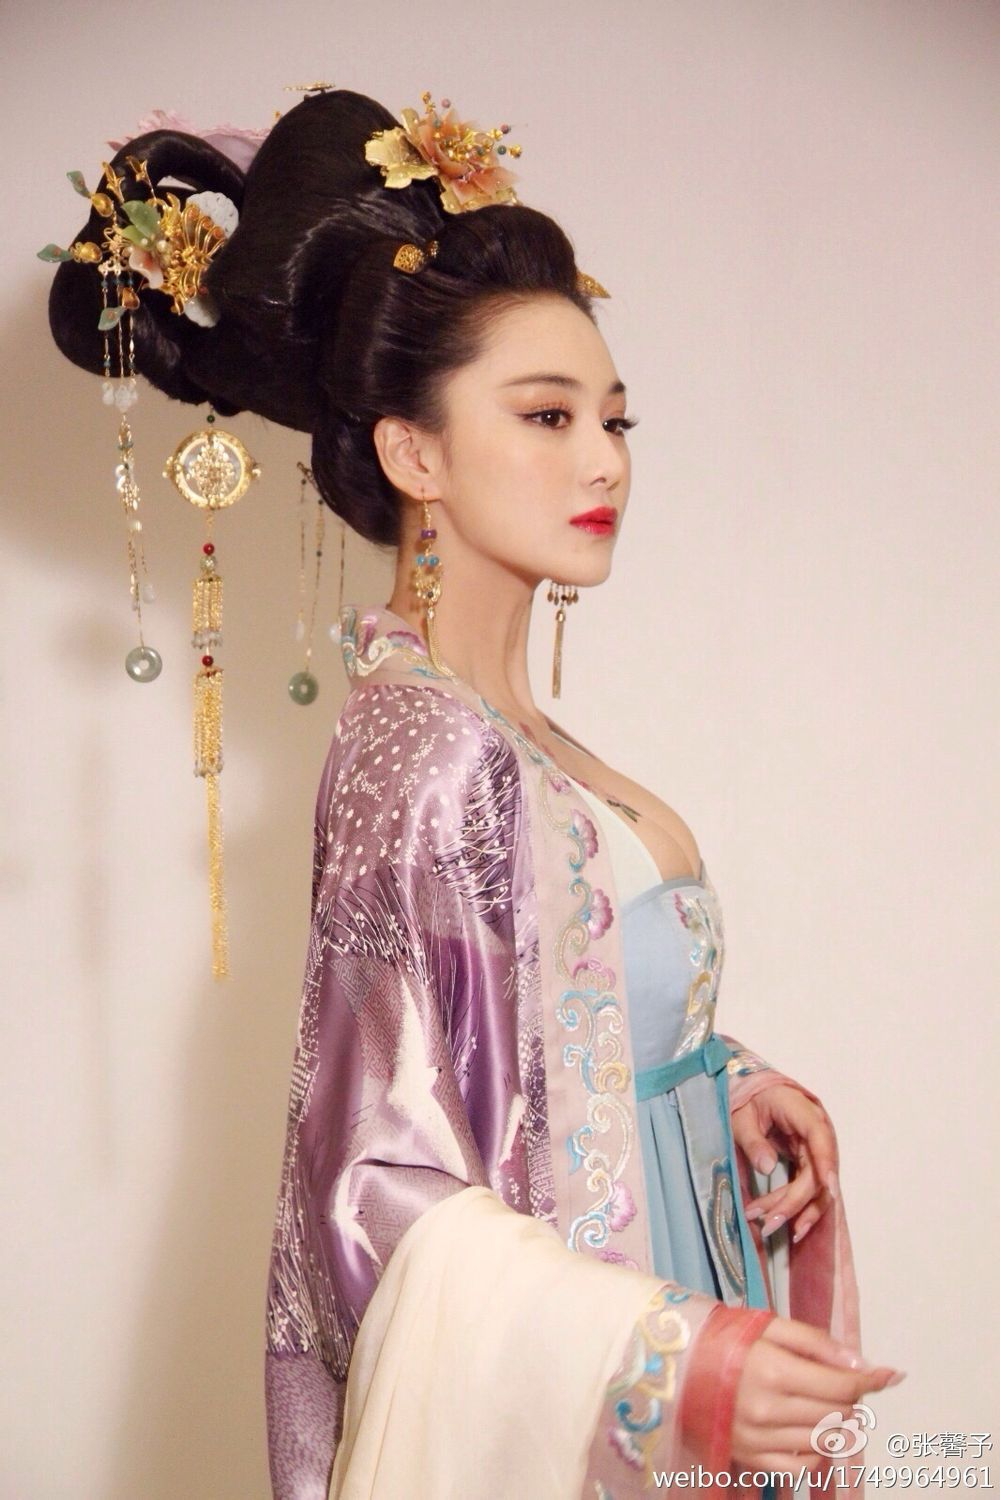 ancient traditional to modern chinese fashion and styles fan